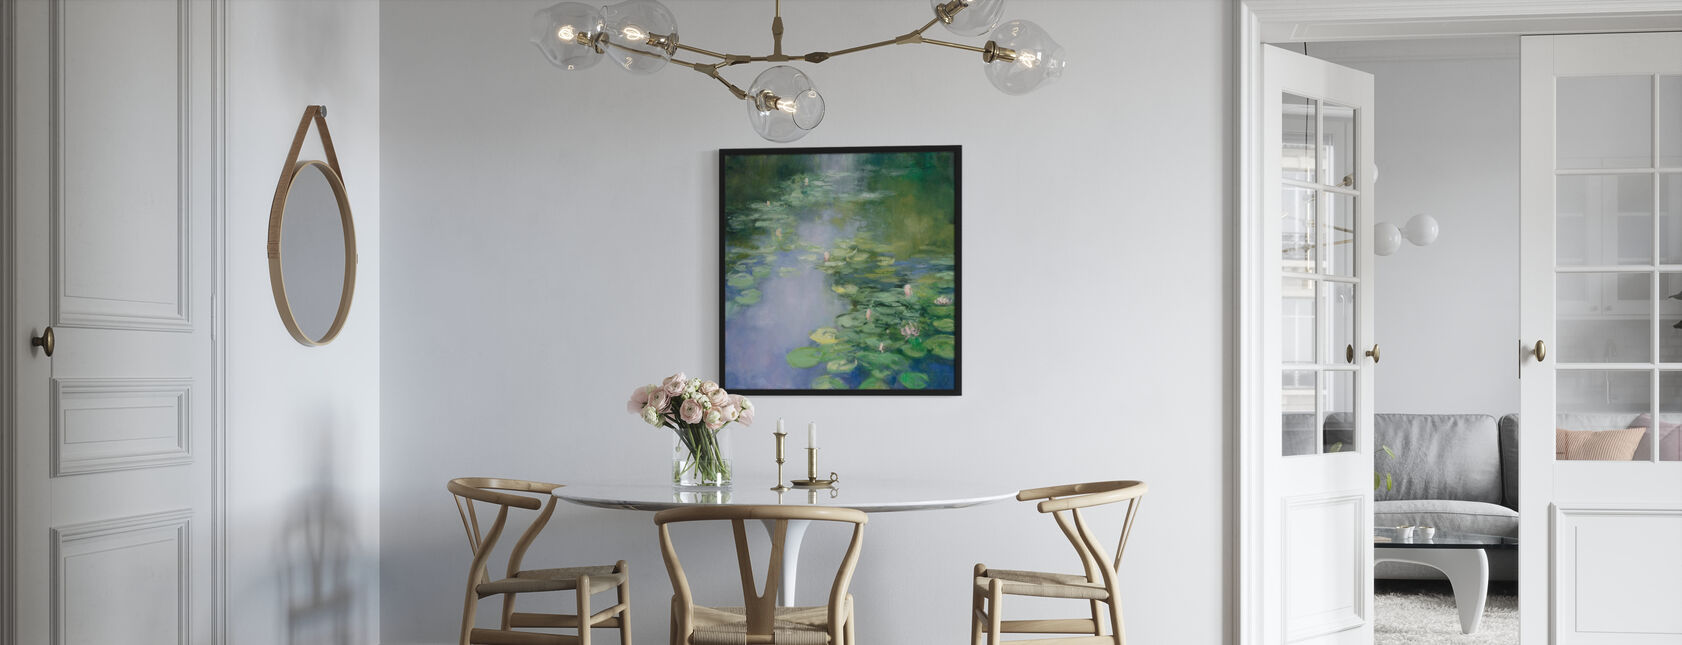 Blue Lily II - Poster - Kitchen